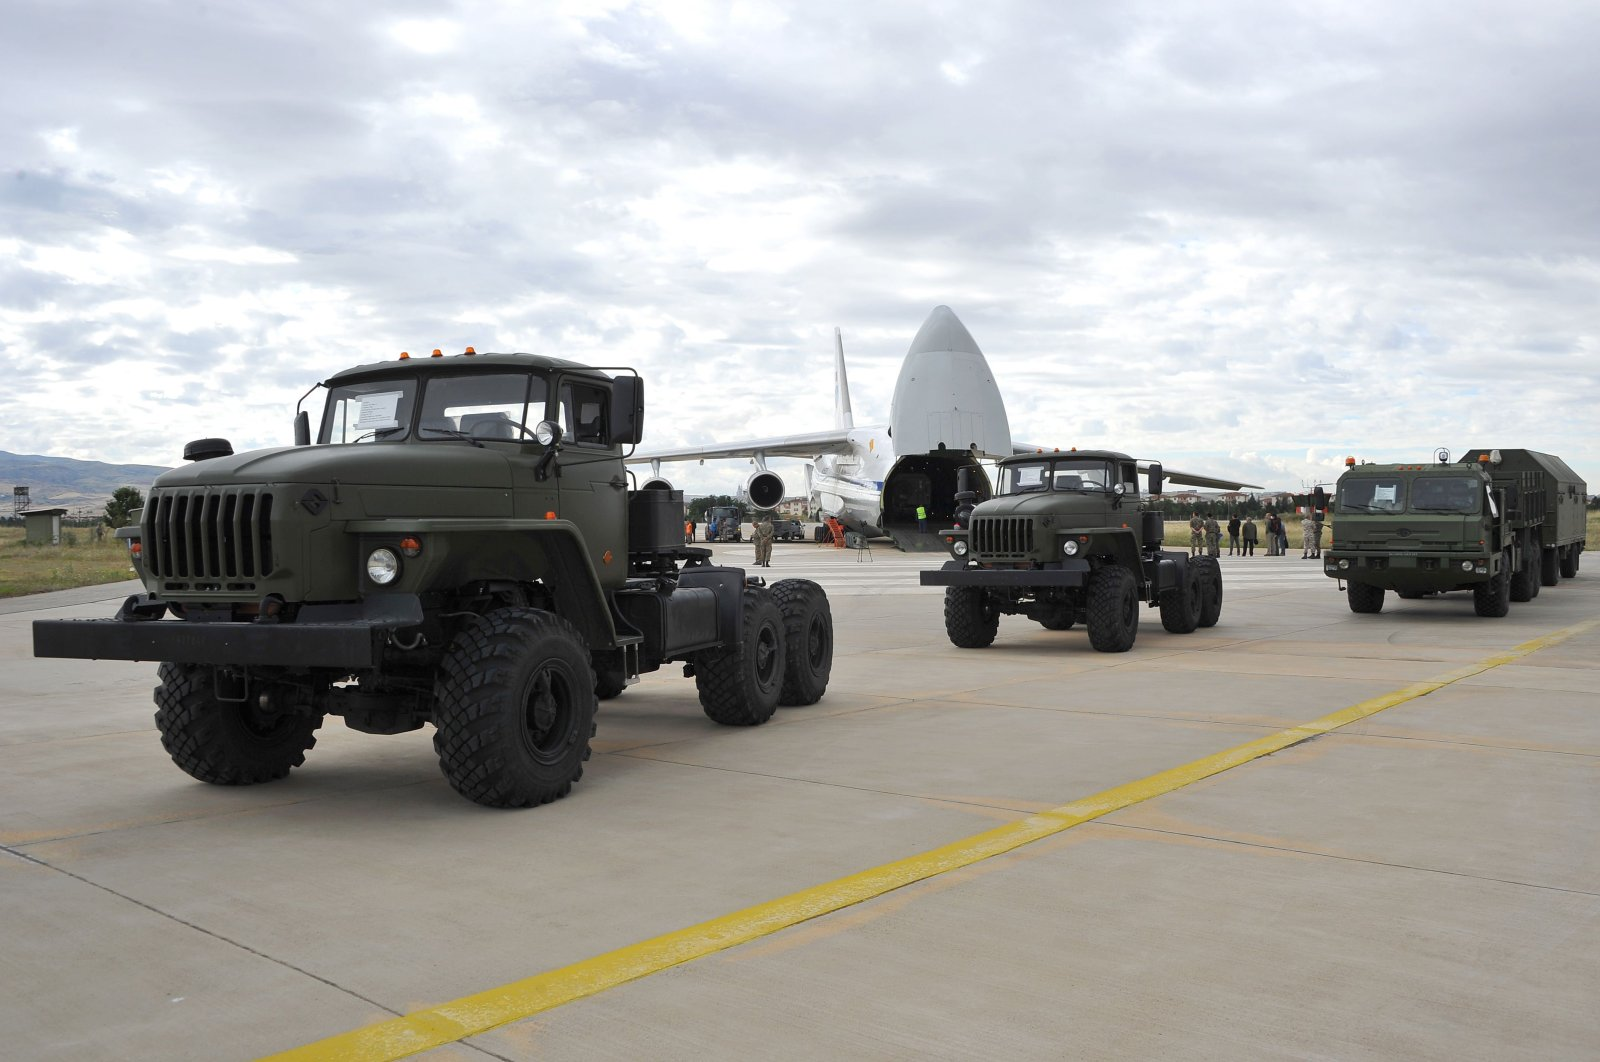 A Russian military cargo plane carrying S-400 missile defence system from Russia to the Akıncılar military airbase in Ankara. July 12, 2019. (AFP Photo)